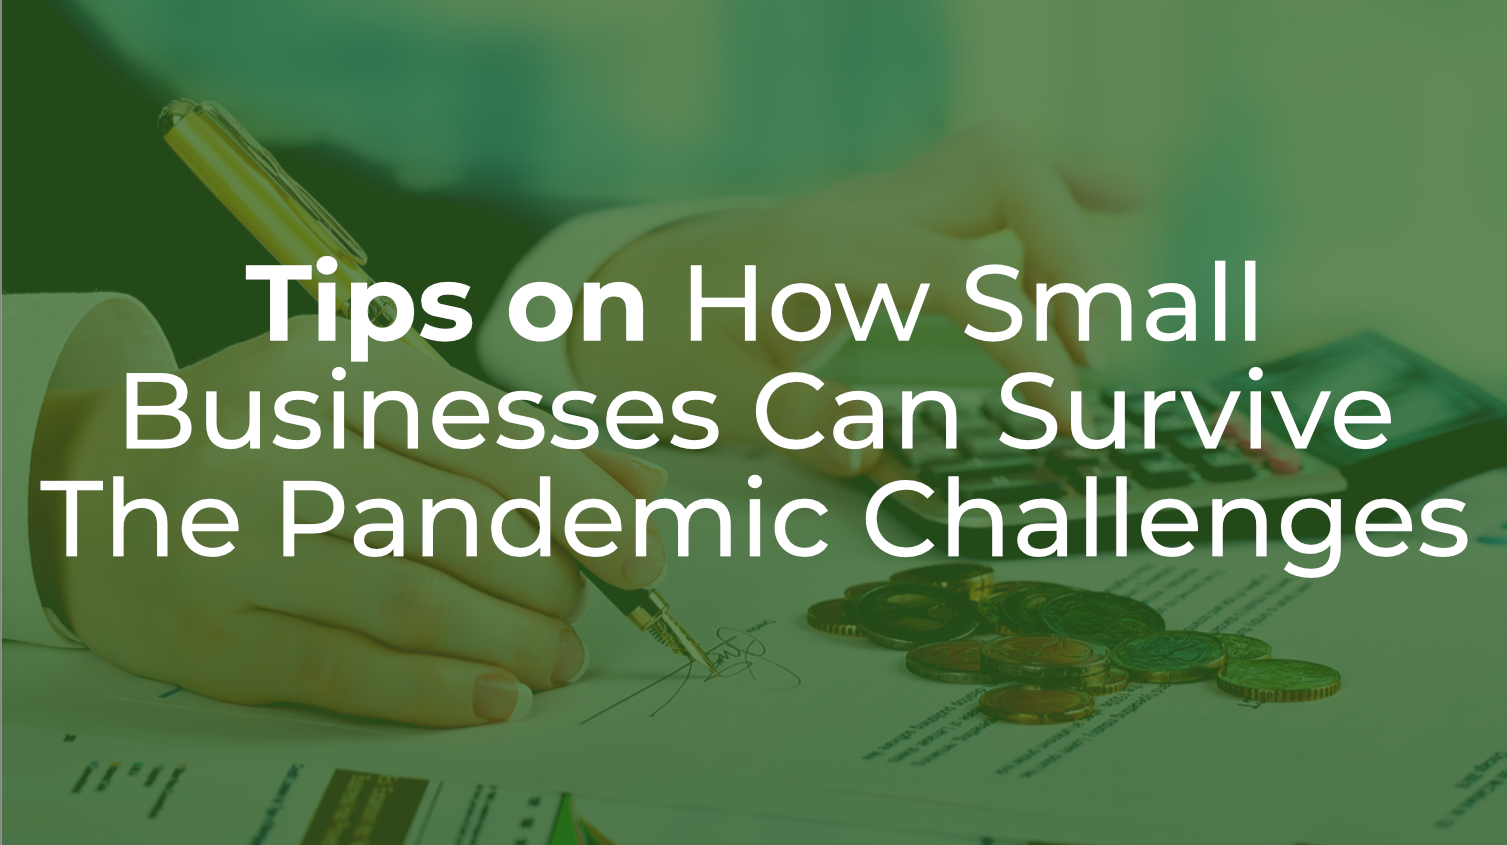 Tips on how small businesses can survive the pandemic challenges